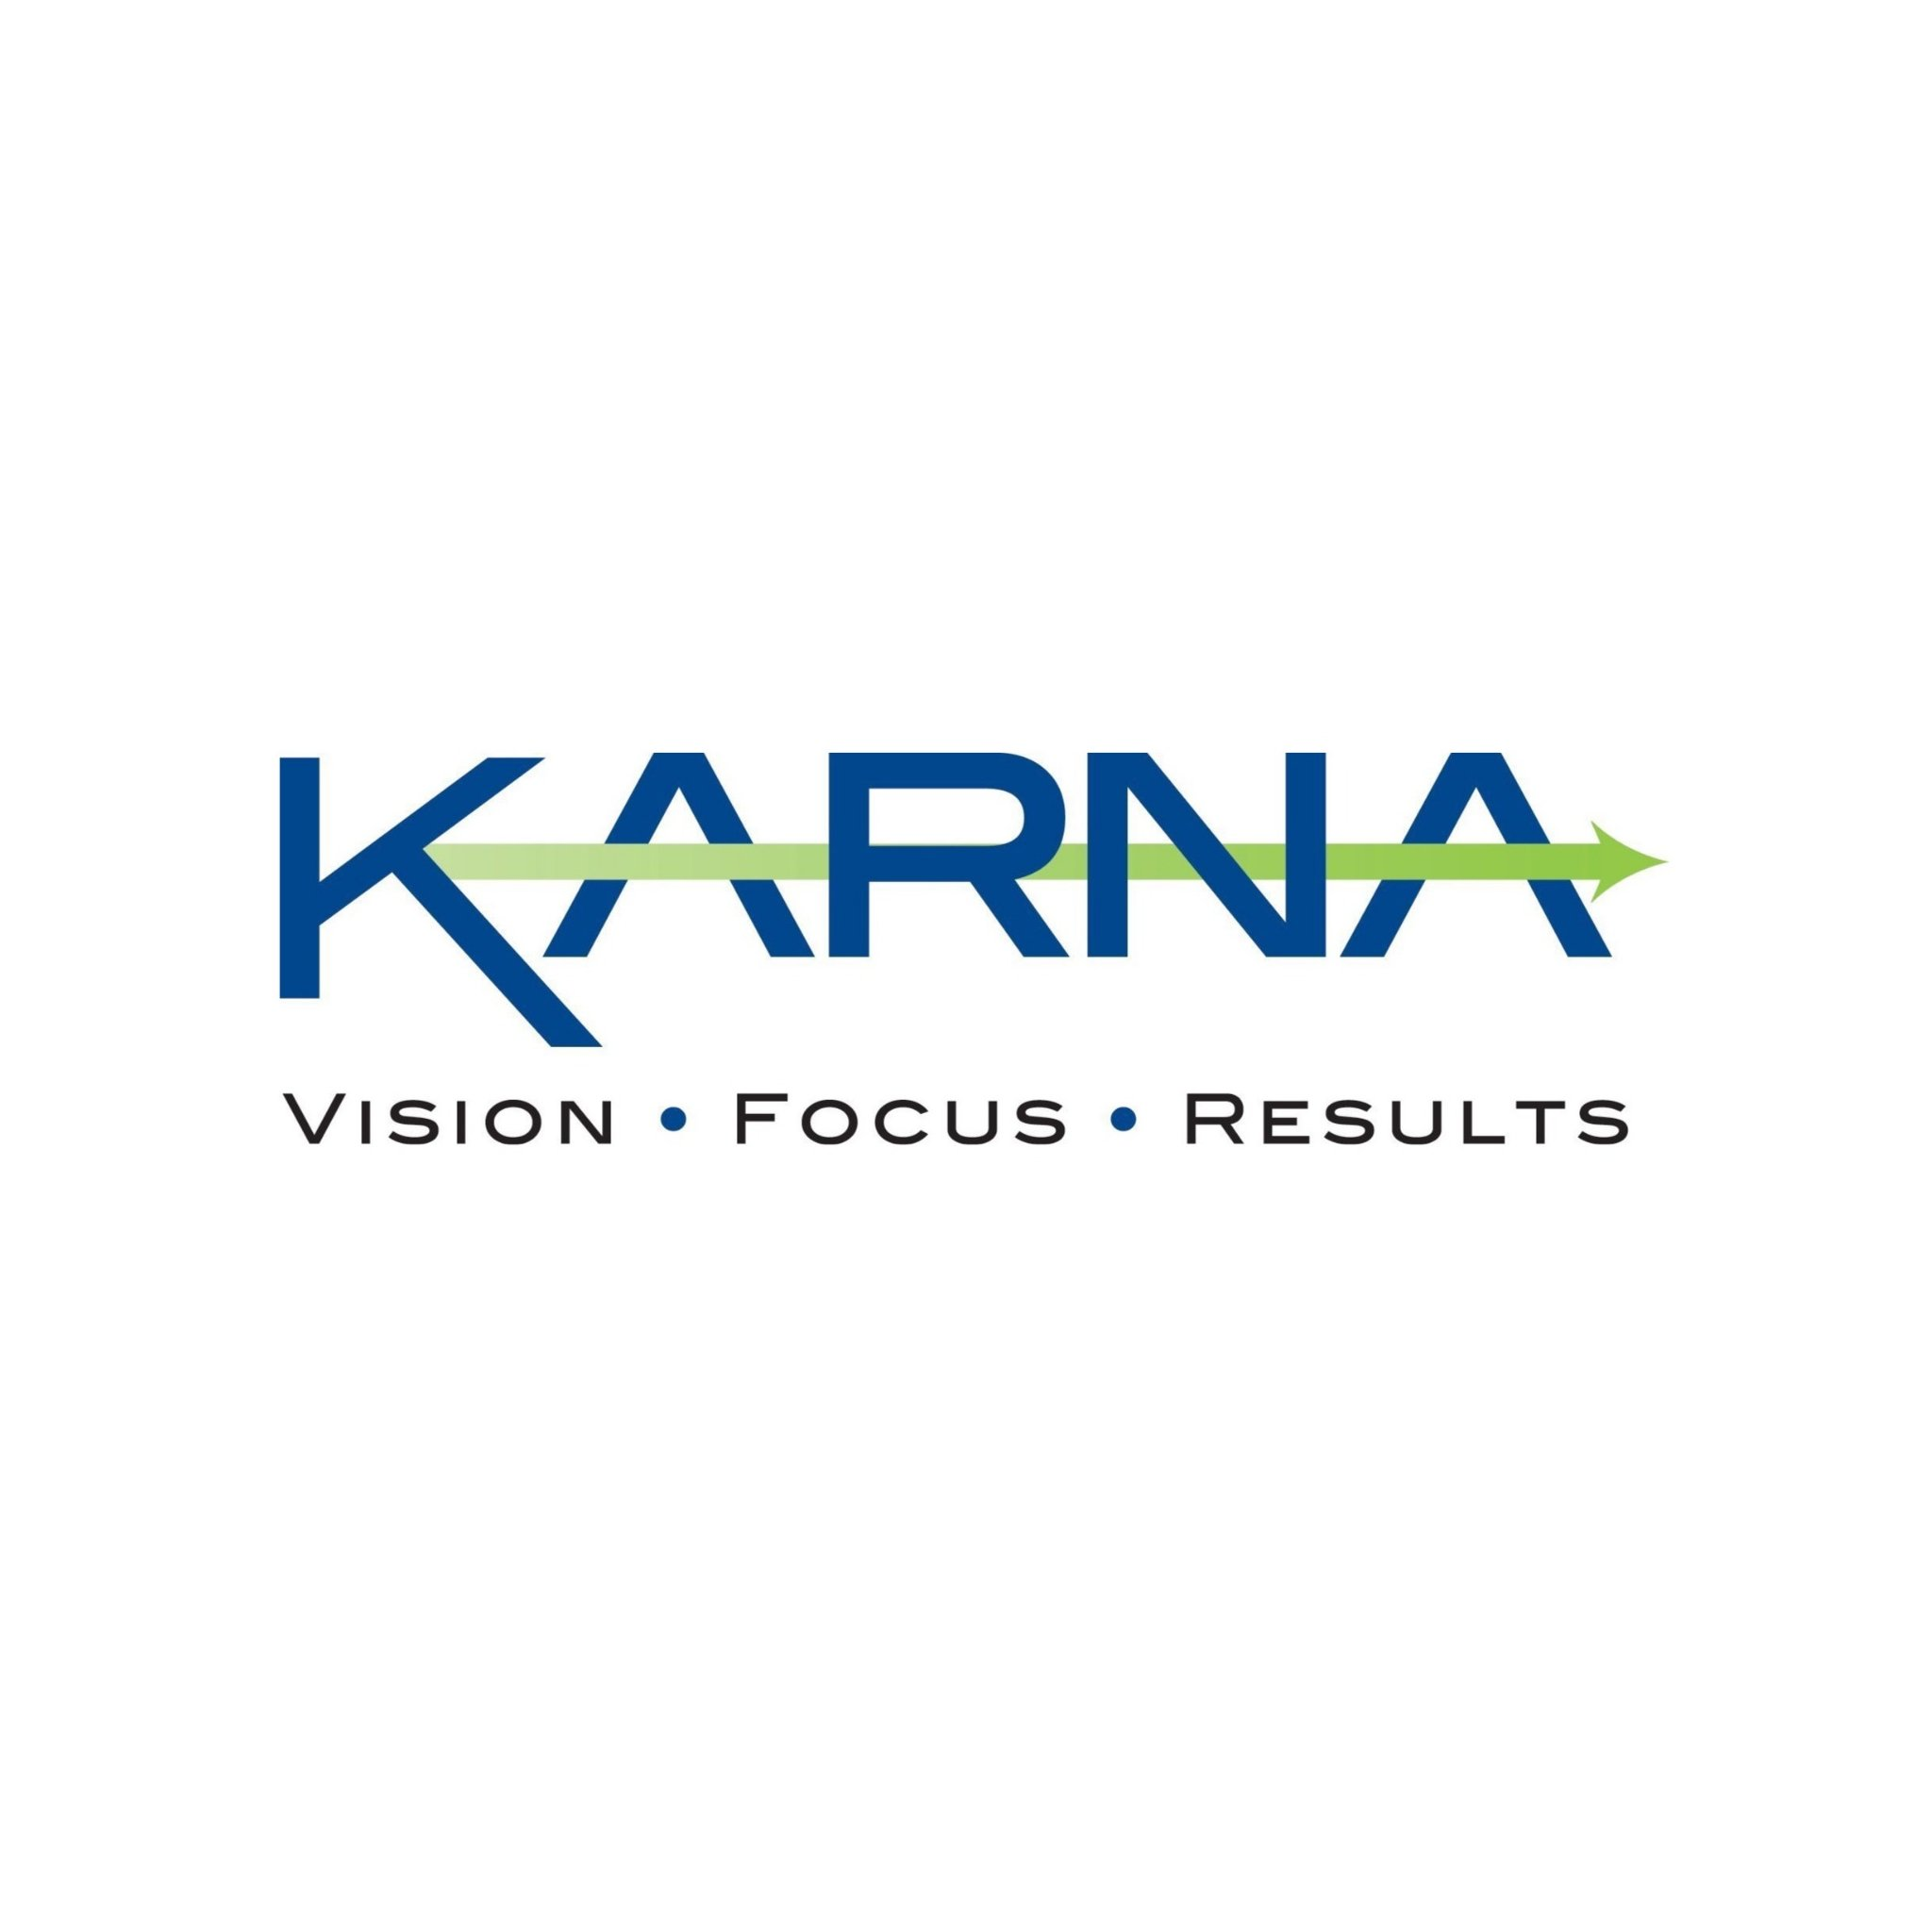 Karna Jobs On Twitter Apply To Be An Information Manager In